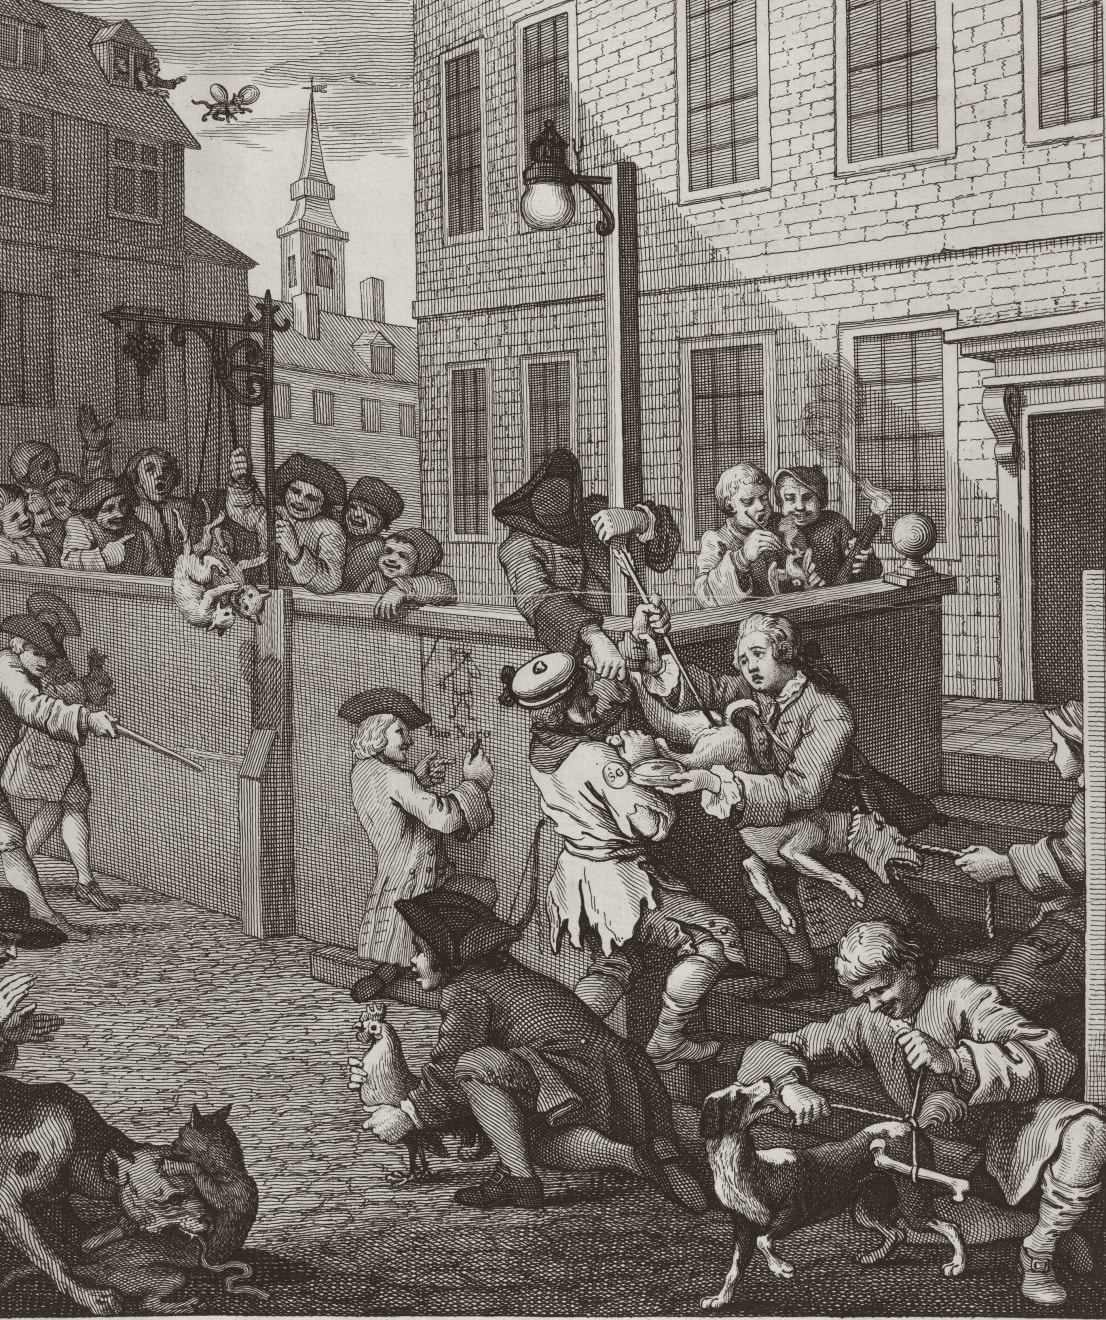 William Hogarth, The First Stage of Cruelty (The Four Stages of Cruelty), 1751